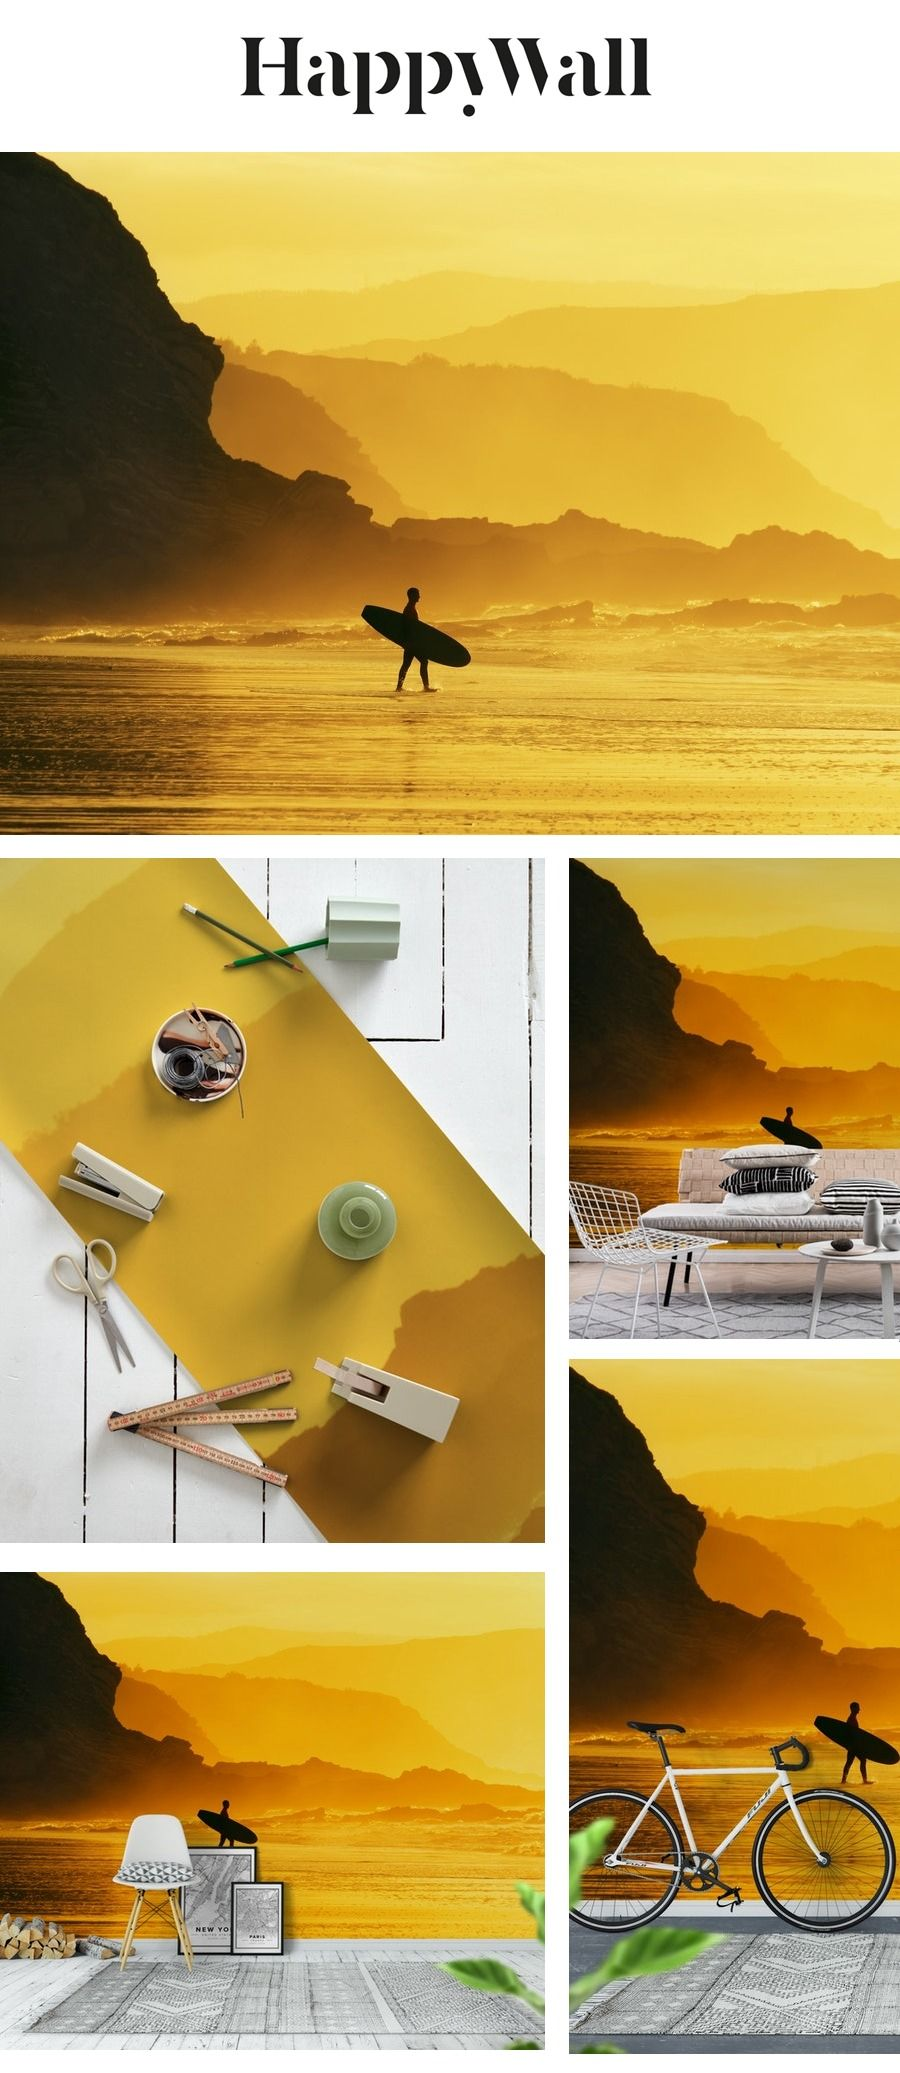 Surfer sunset Wall mural Sunset wallpaper, Wall murals